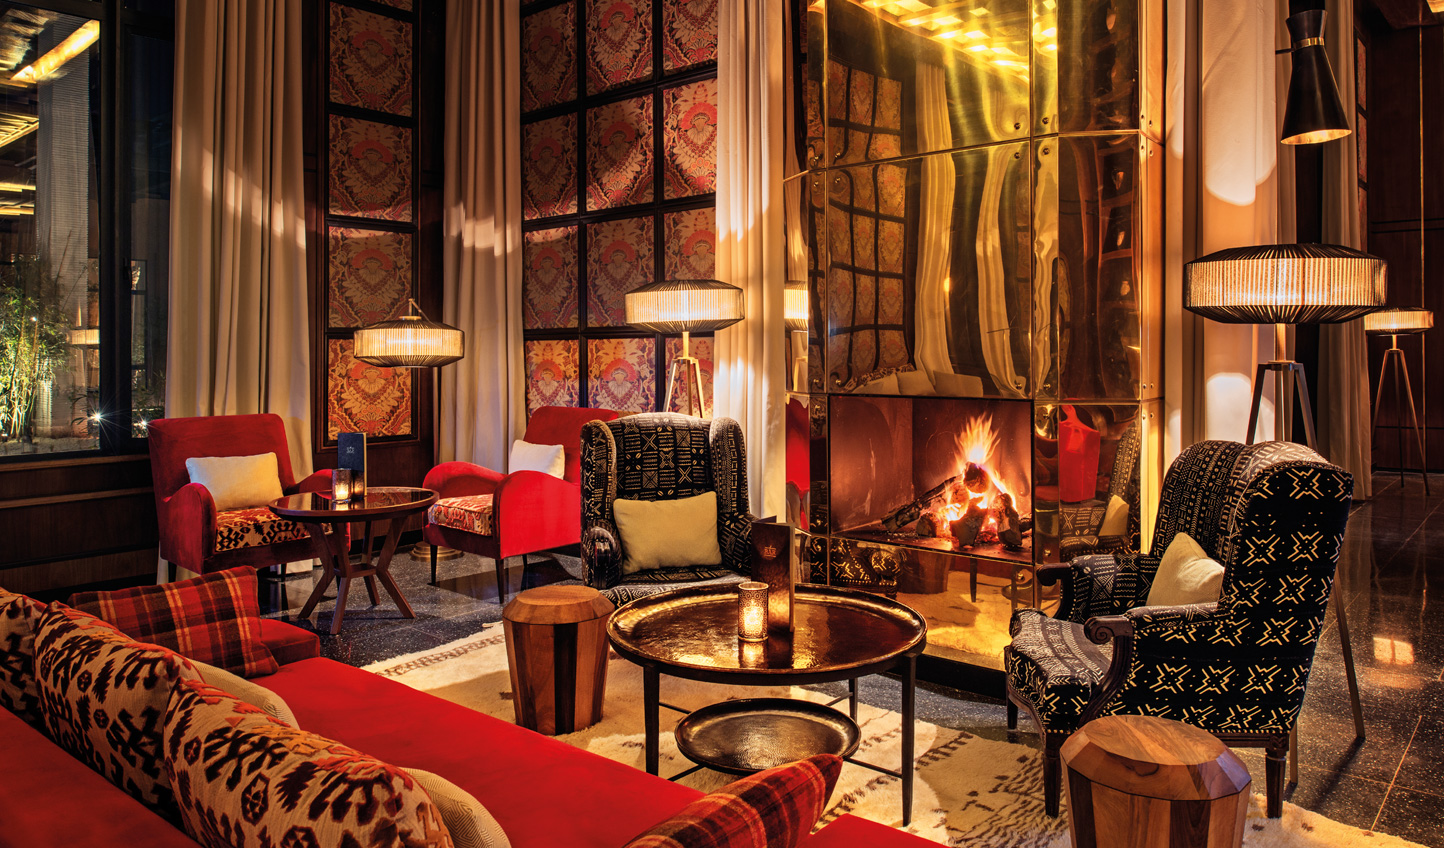 Enjoy a cocktail by the fire on chillier evenings